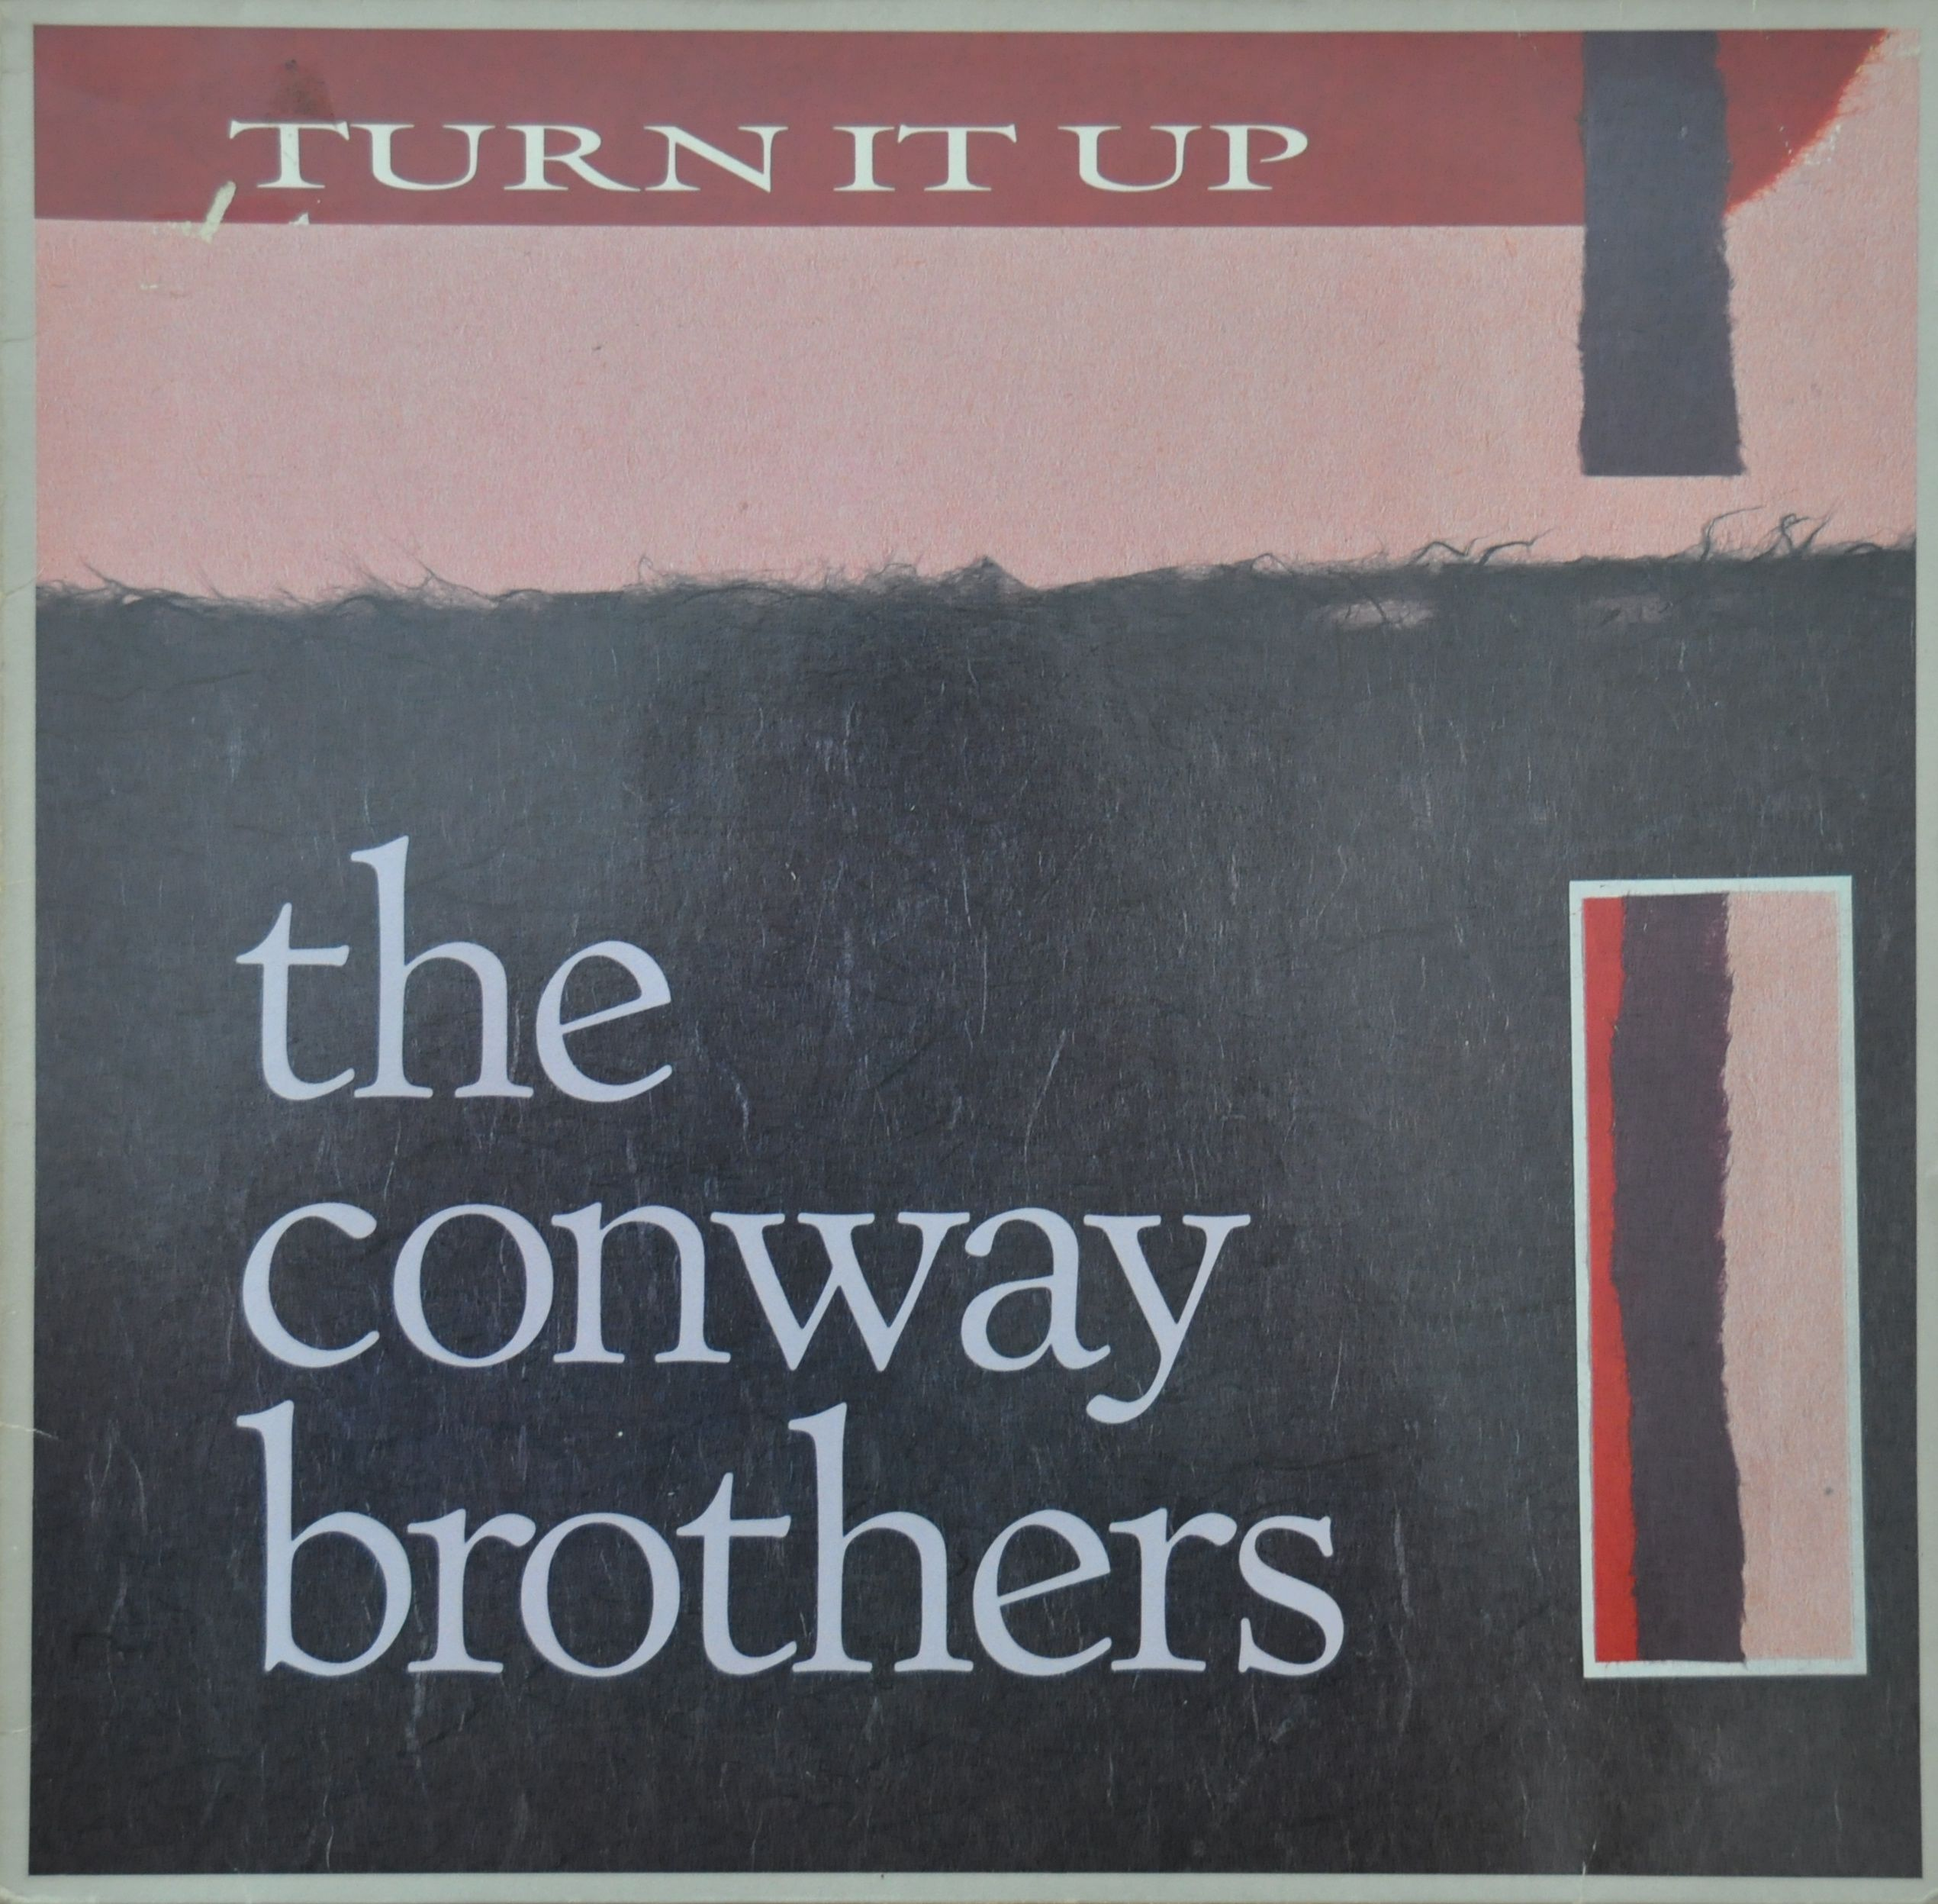 jaquettes2/The-Conway-Brothers_Turn-it-up.jpg